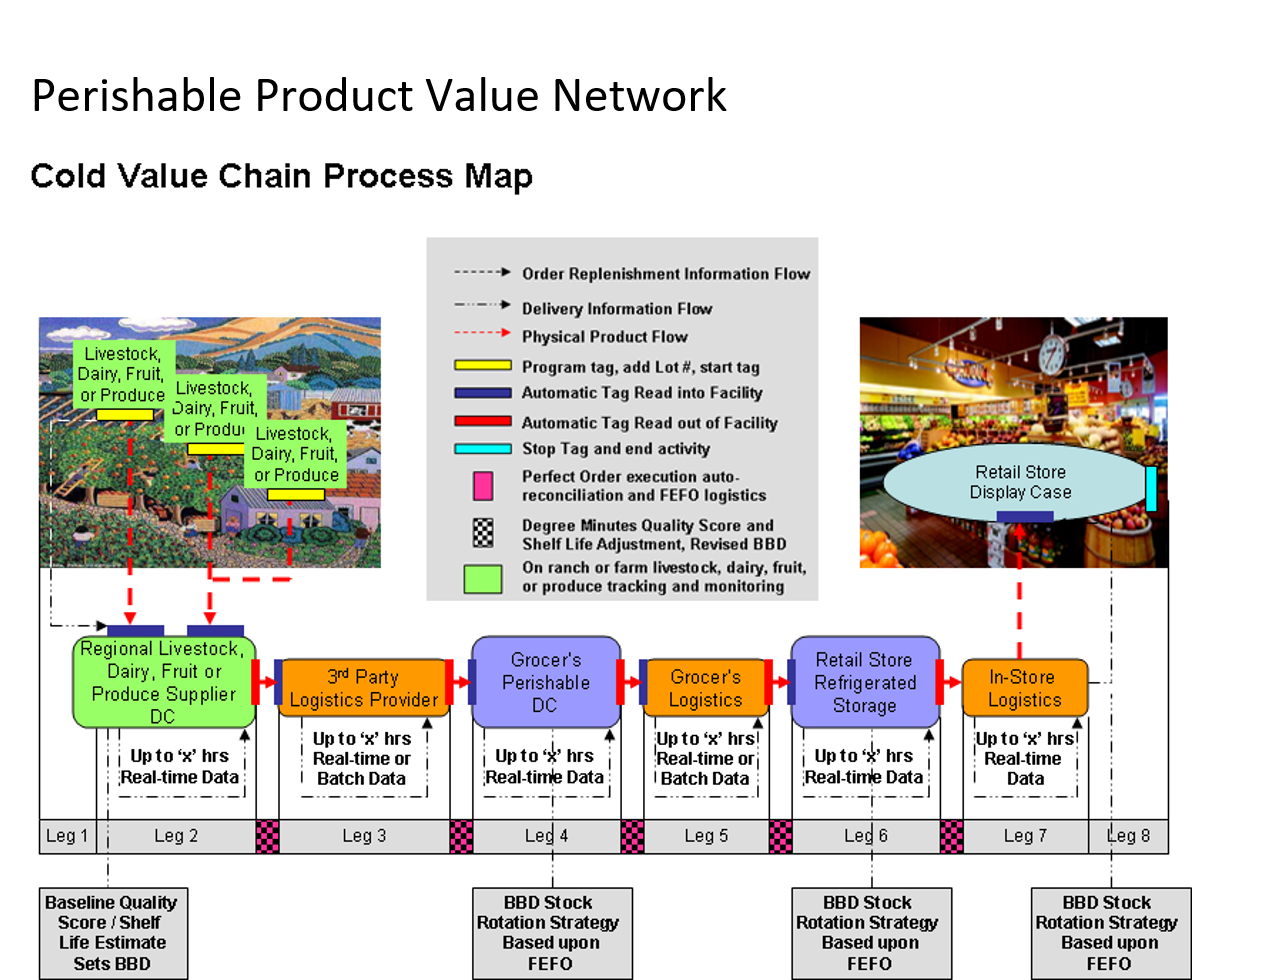 Cold Value Chain Process Map.png